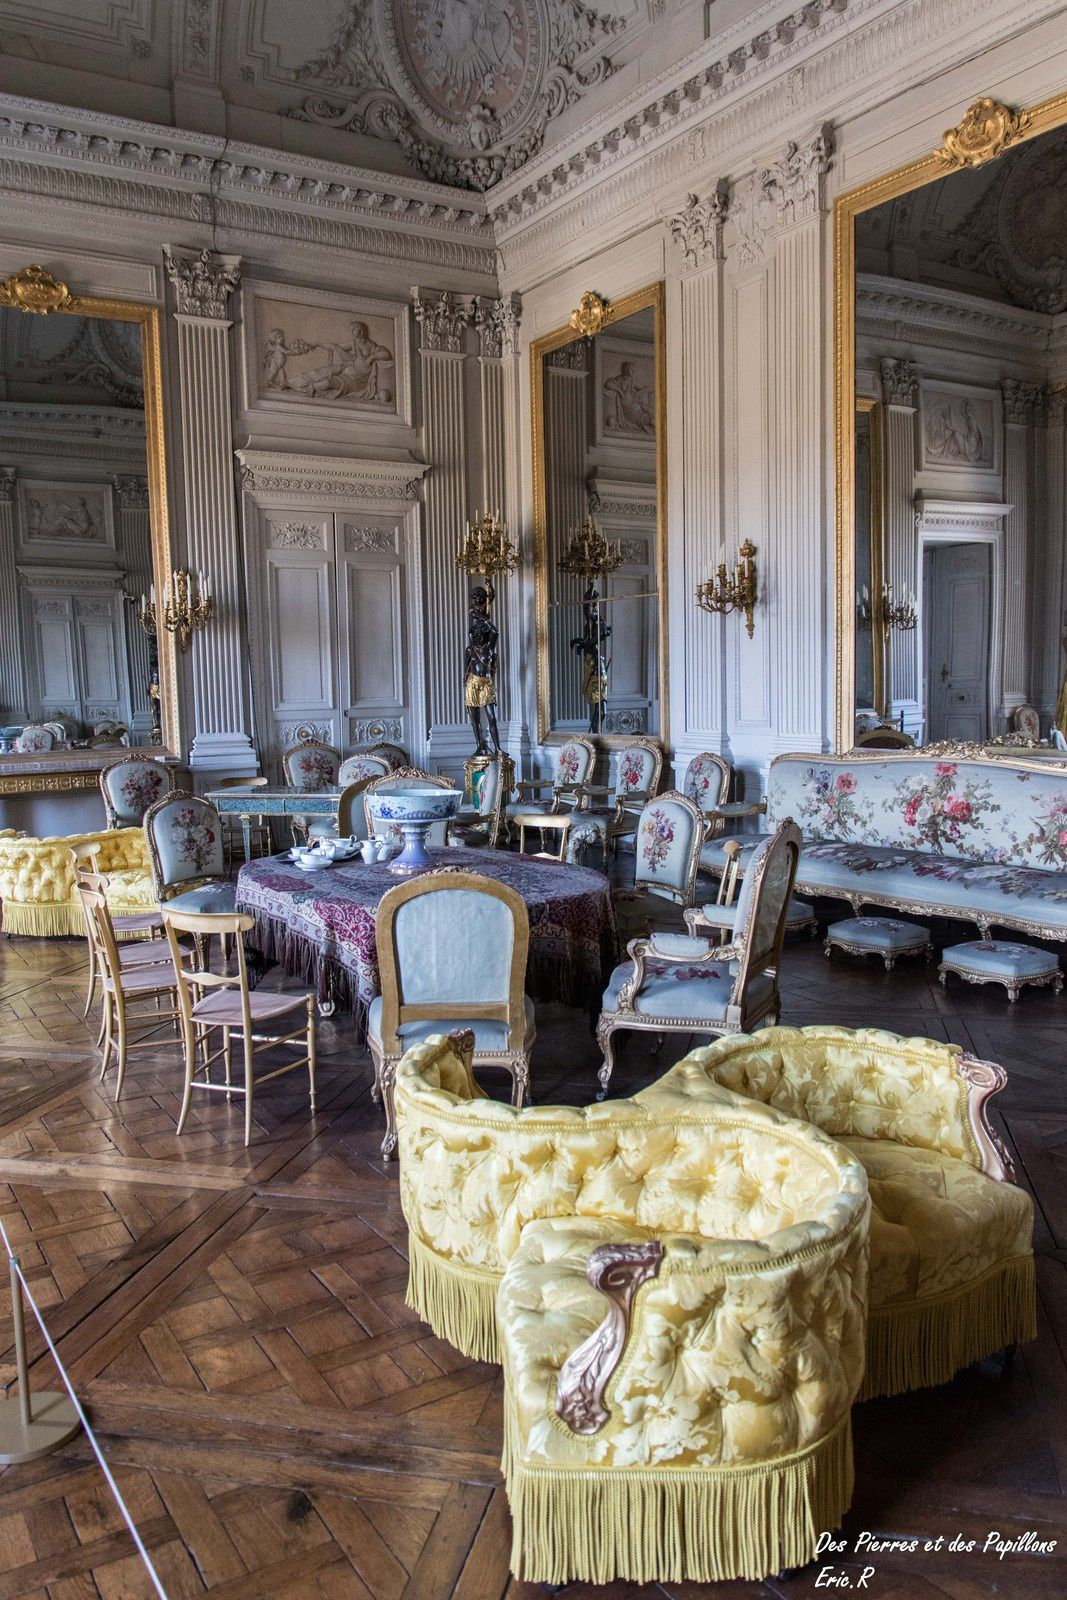 Le salon de Réception.